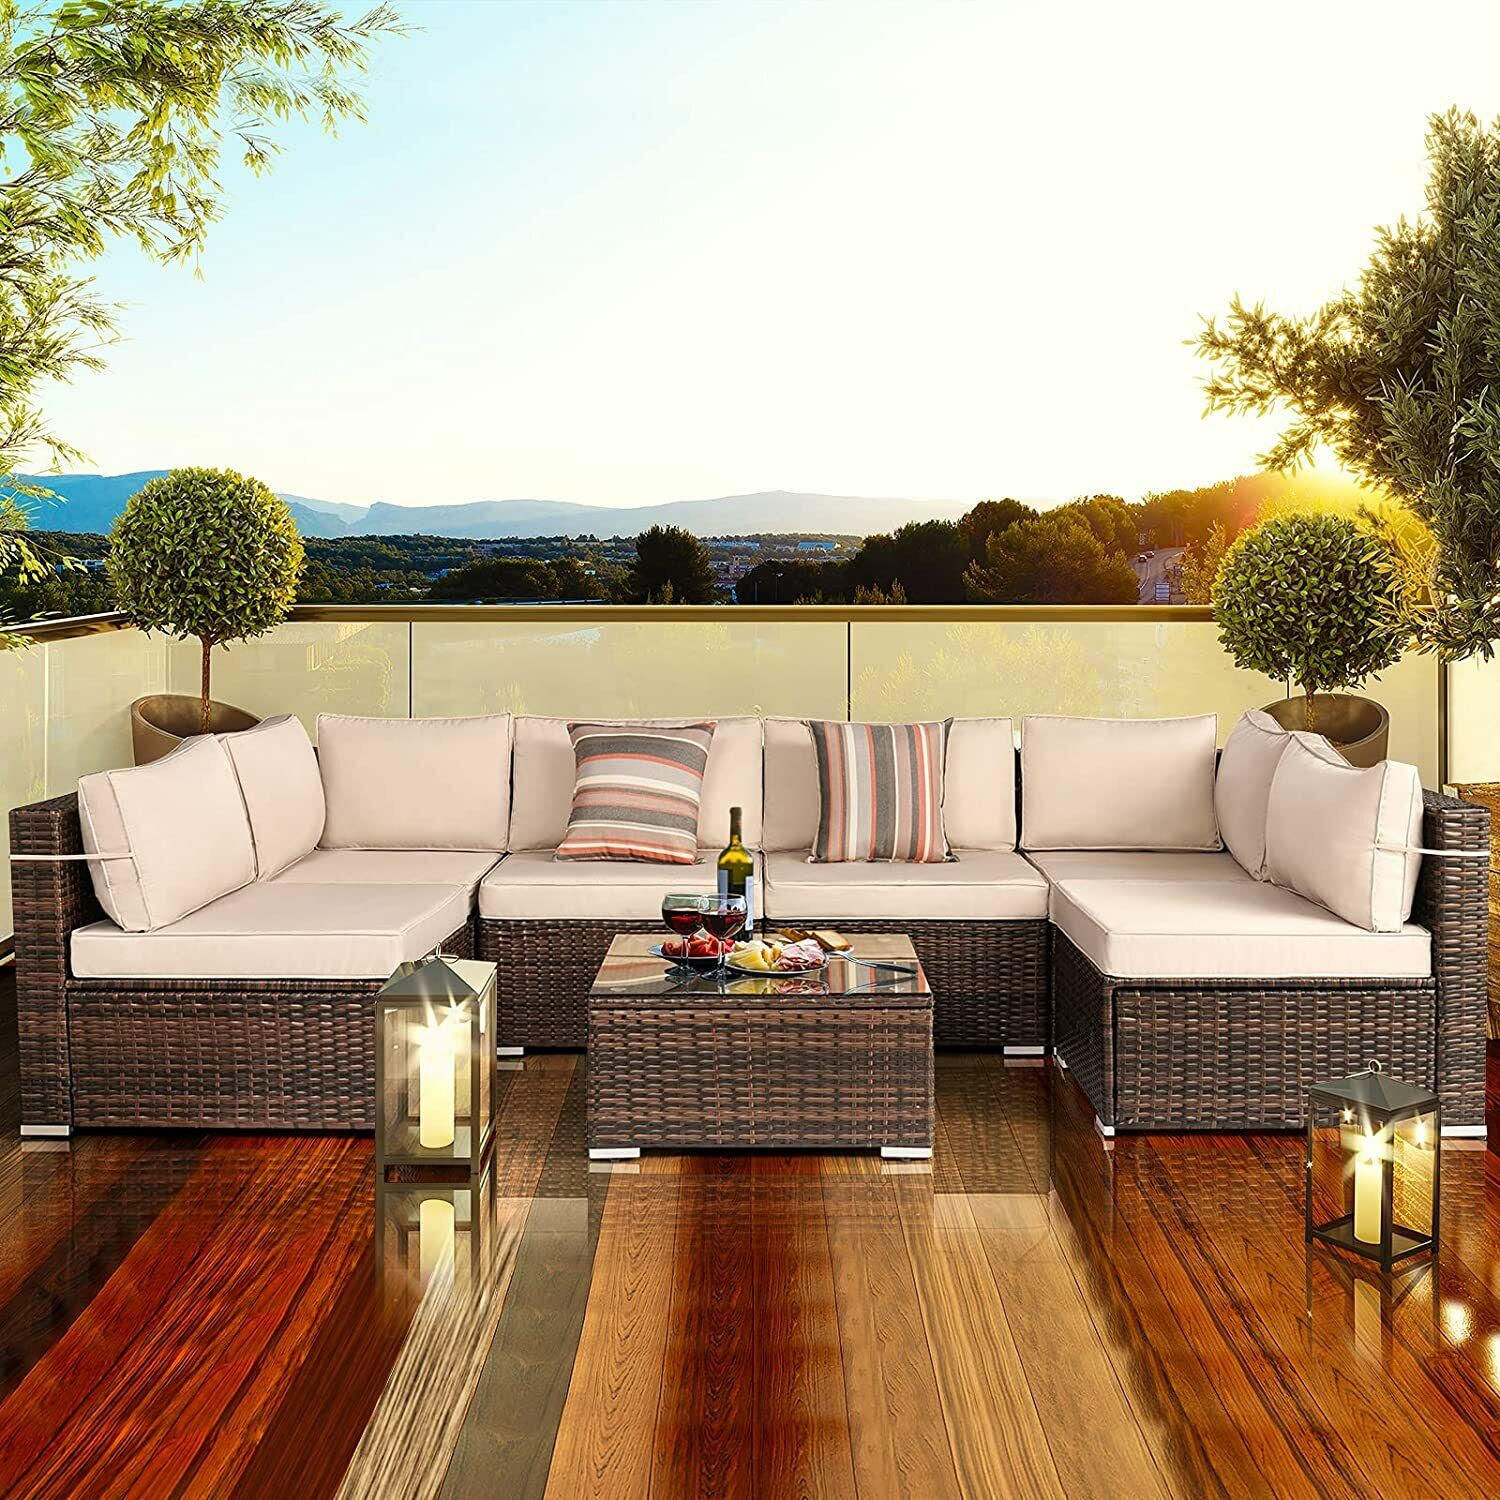 7 Pcs Patio Furniture Sets Outdoor Sectional Pe Wicker Sofa